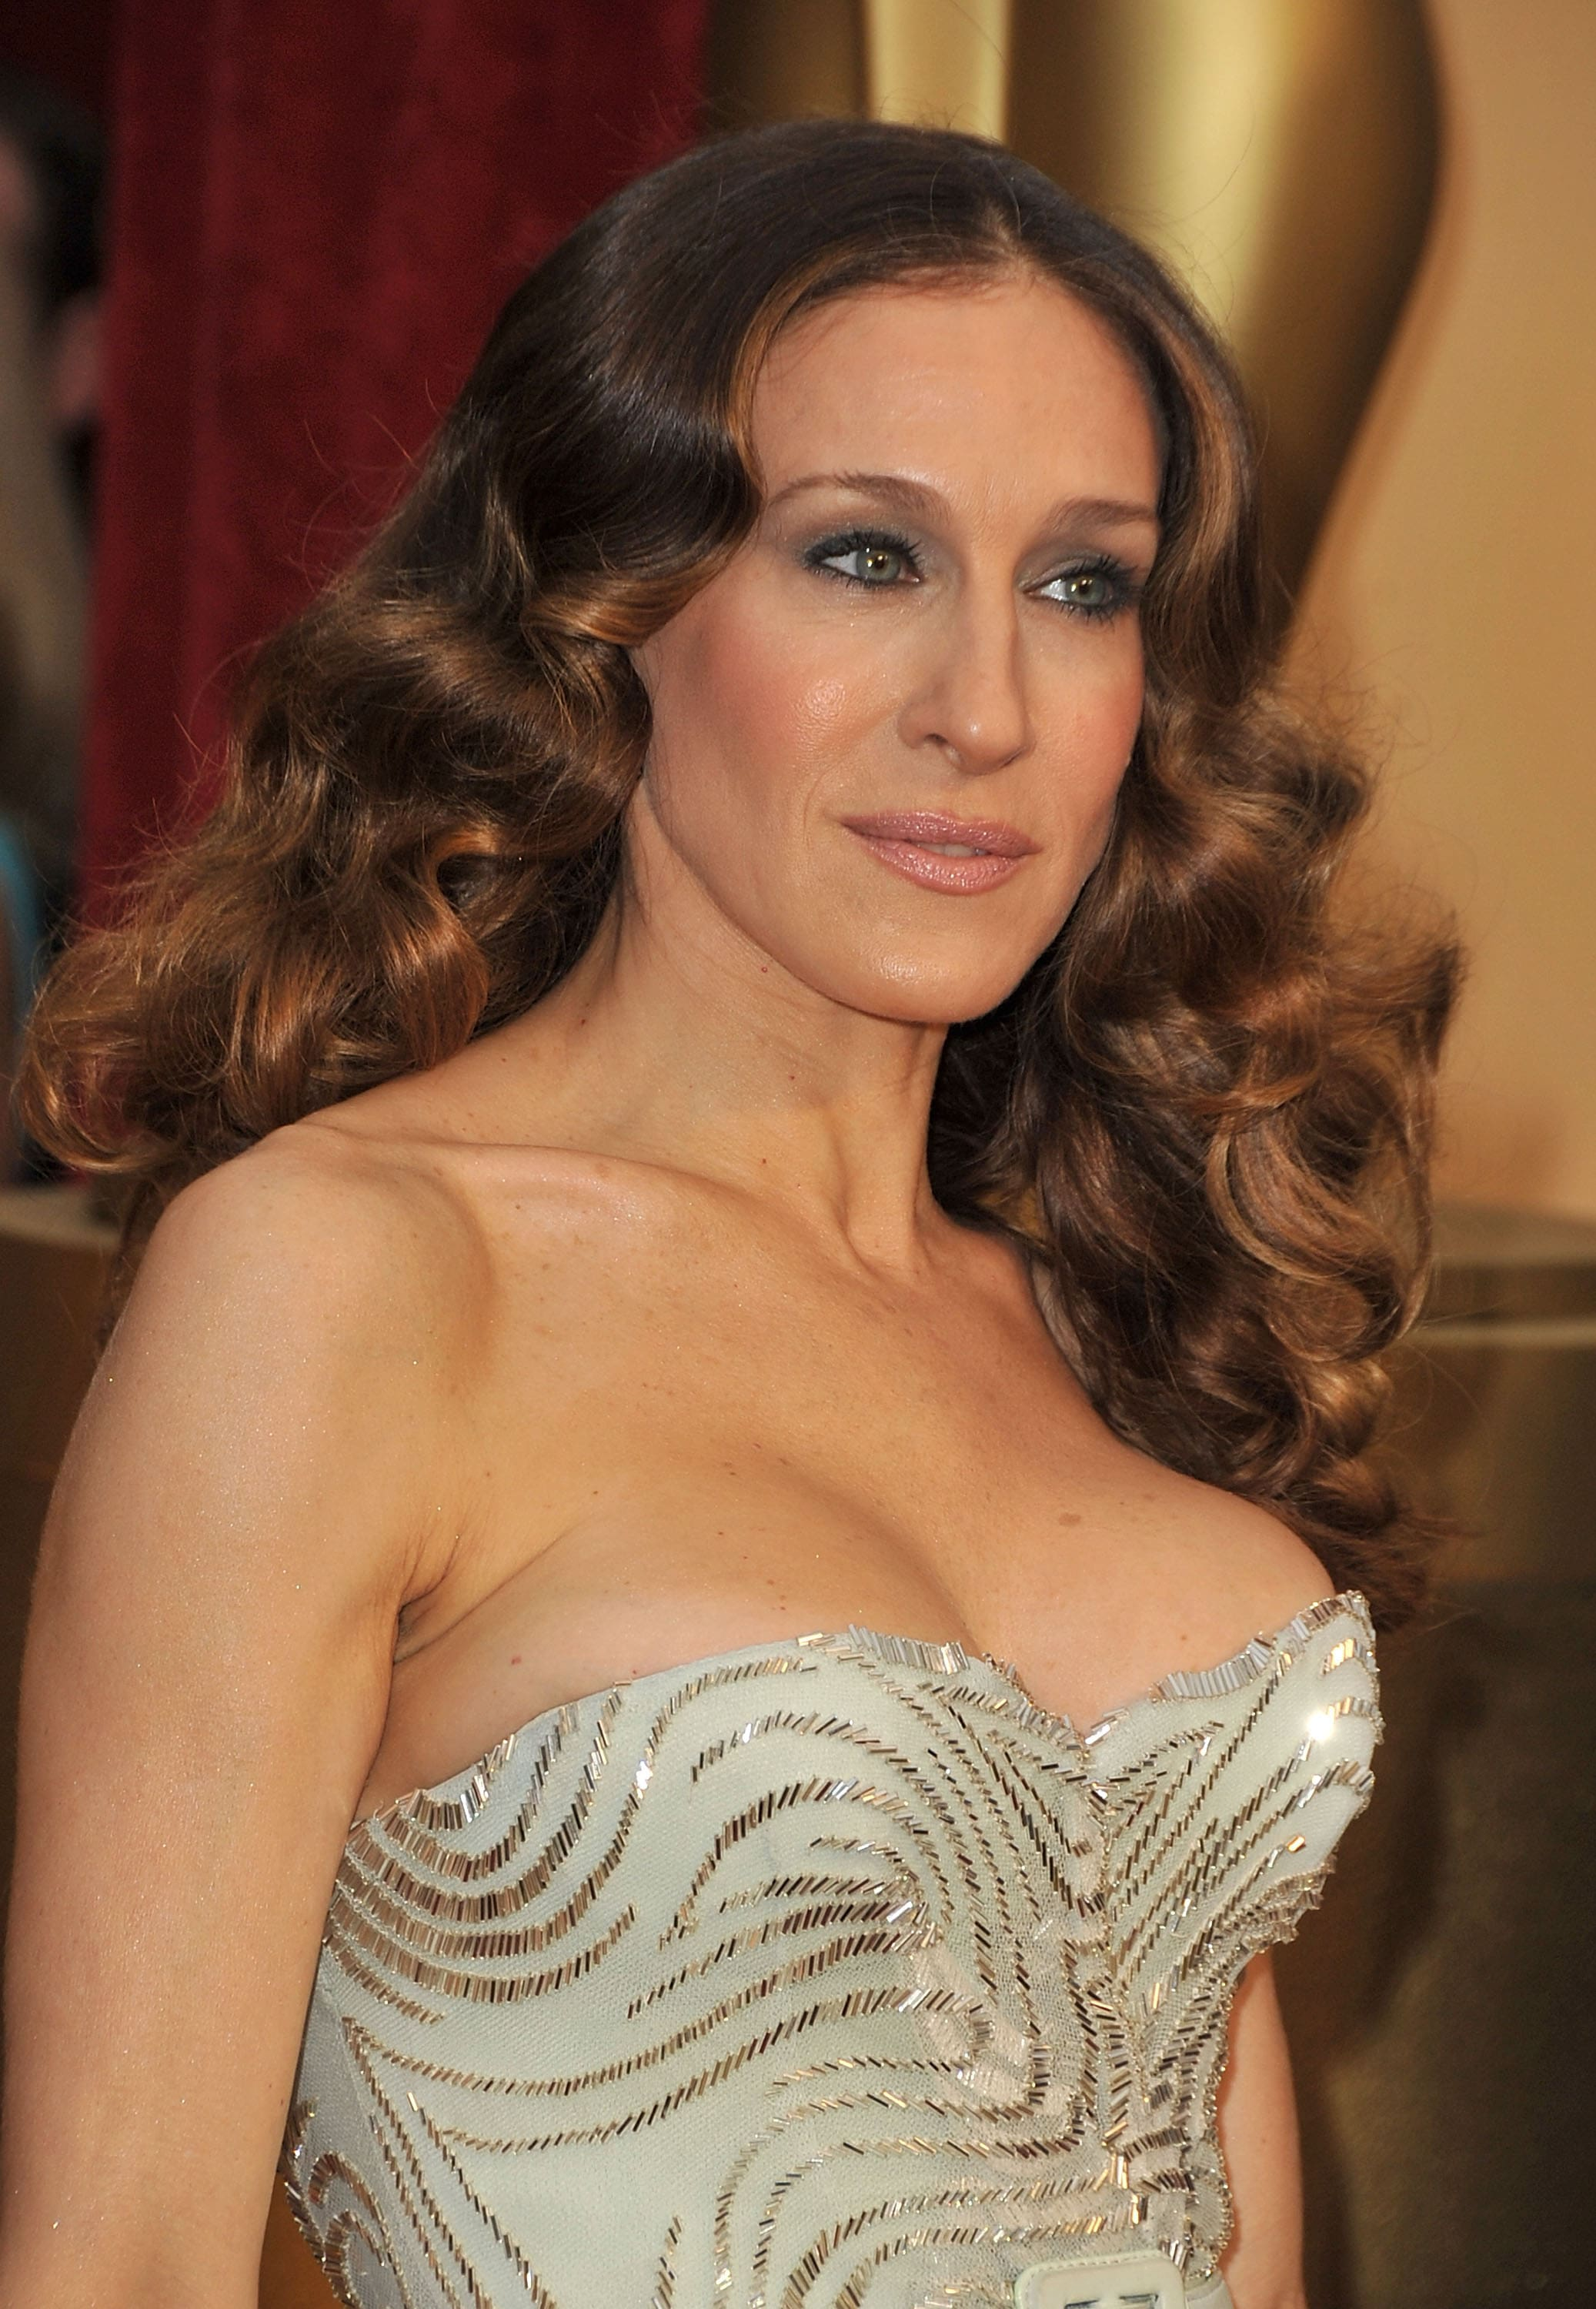 Necessary Nude photos of sarah jessica parker